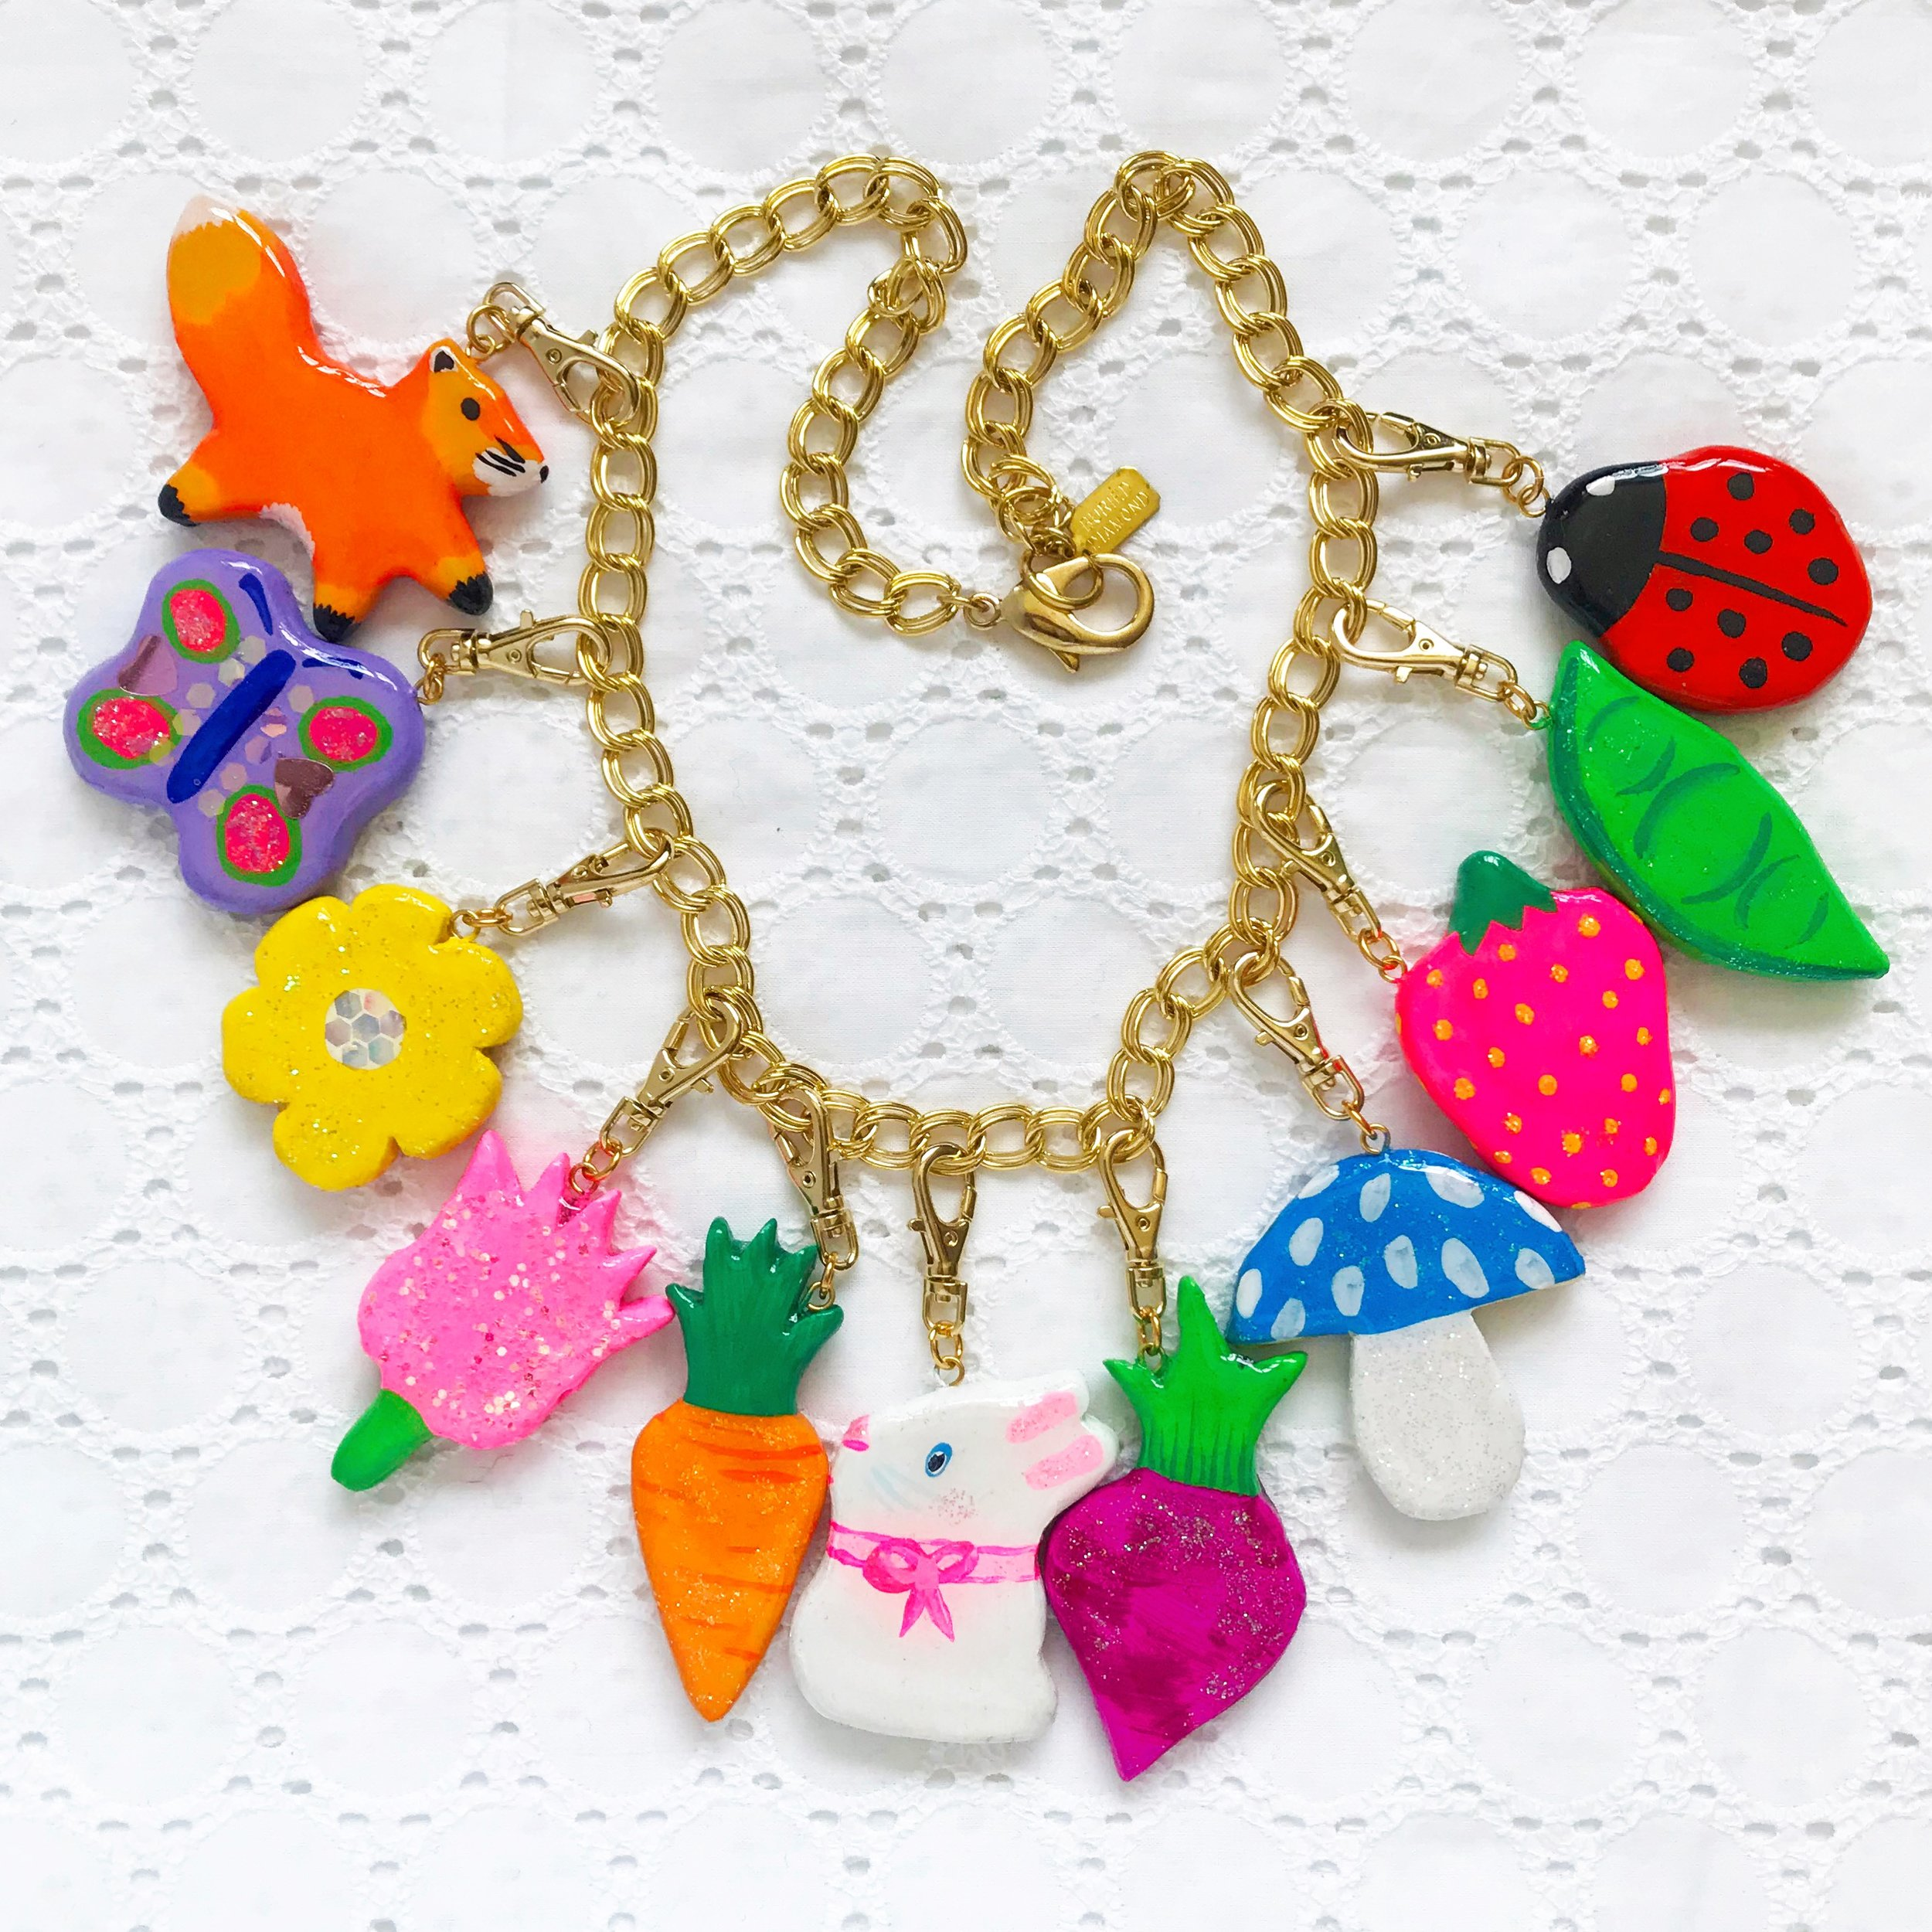 A one-of-a-kind chunky charms necklace from my collection. This was inspired by European Easter treats and decorations.